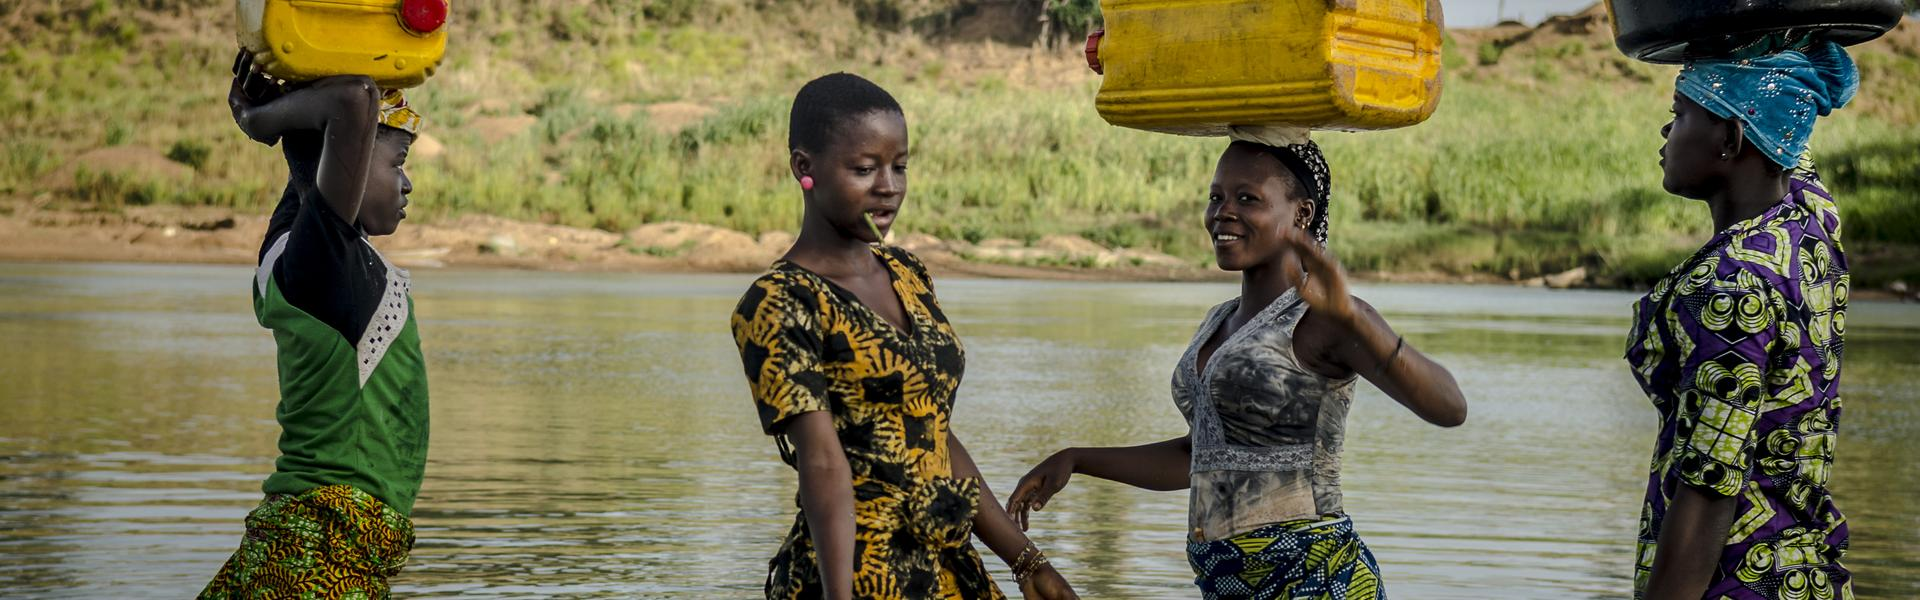 woman in the river fetching water